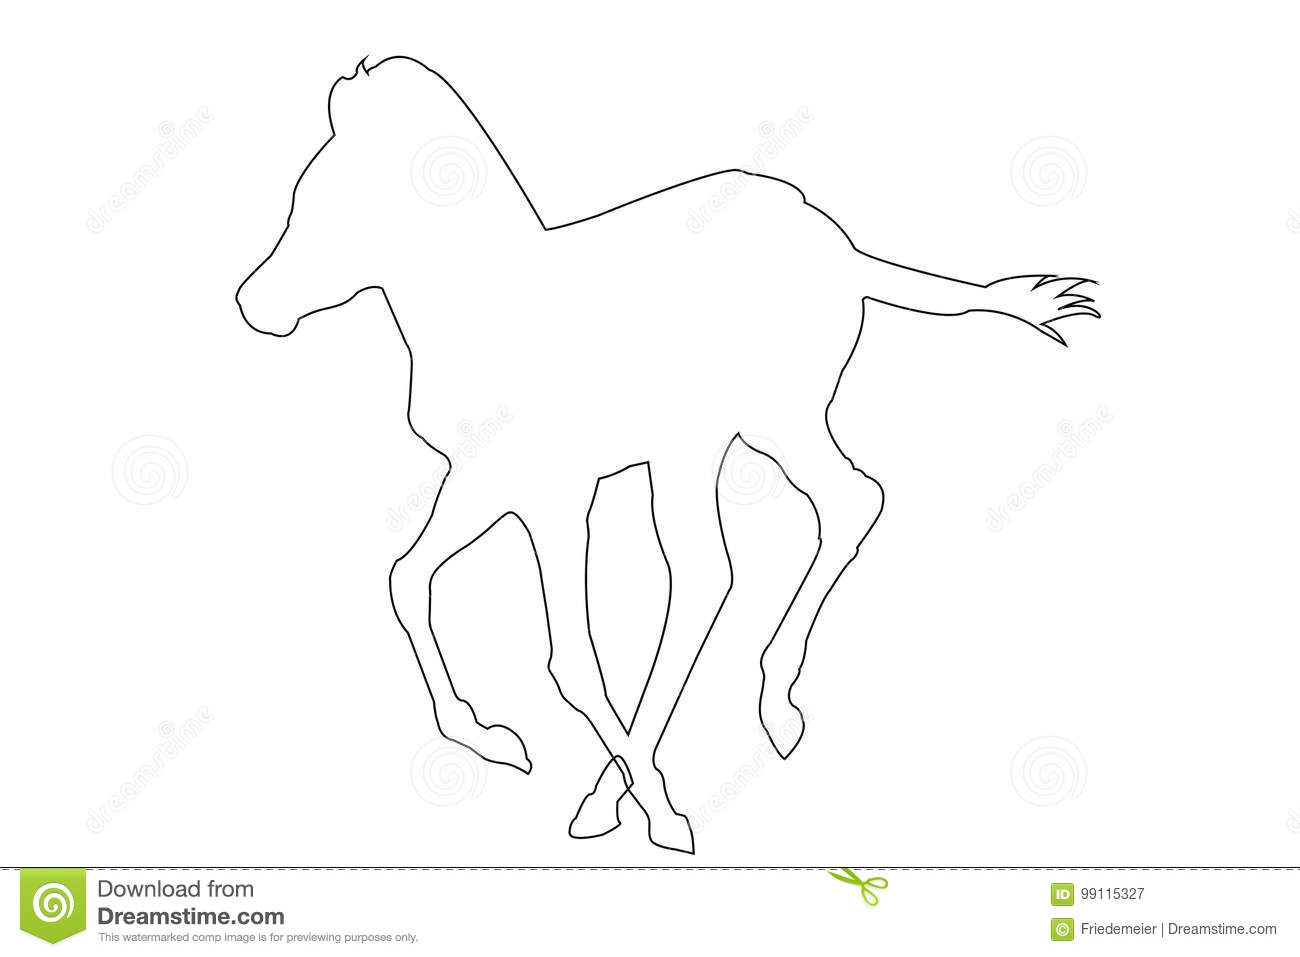 Outline Zebra Stock Illustrations 750 Outline Zebra